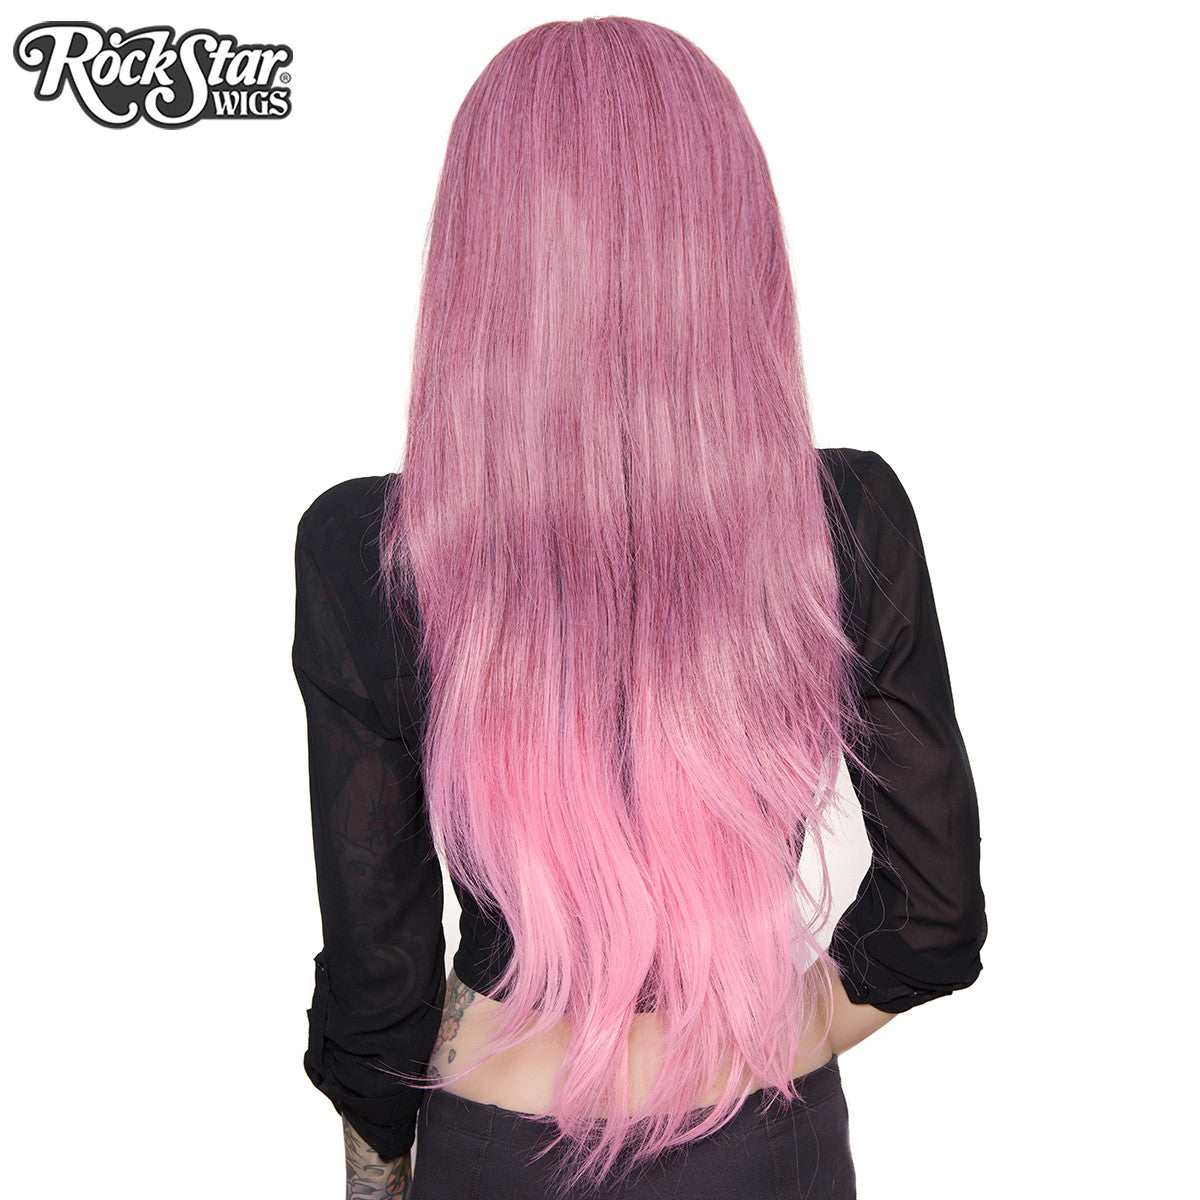 RockStar Wigs® <br> Ombre Alexa™ Collection - Rose -00203